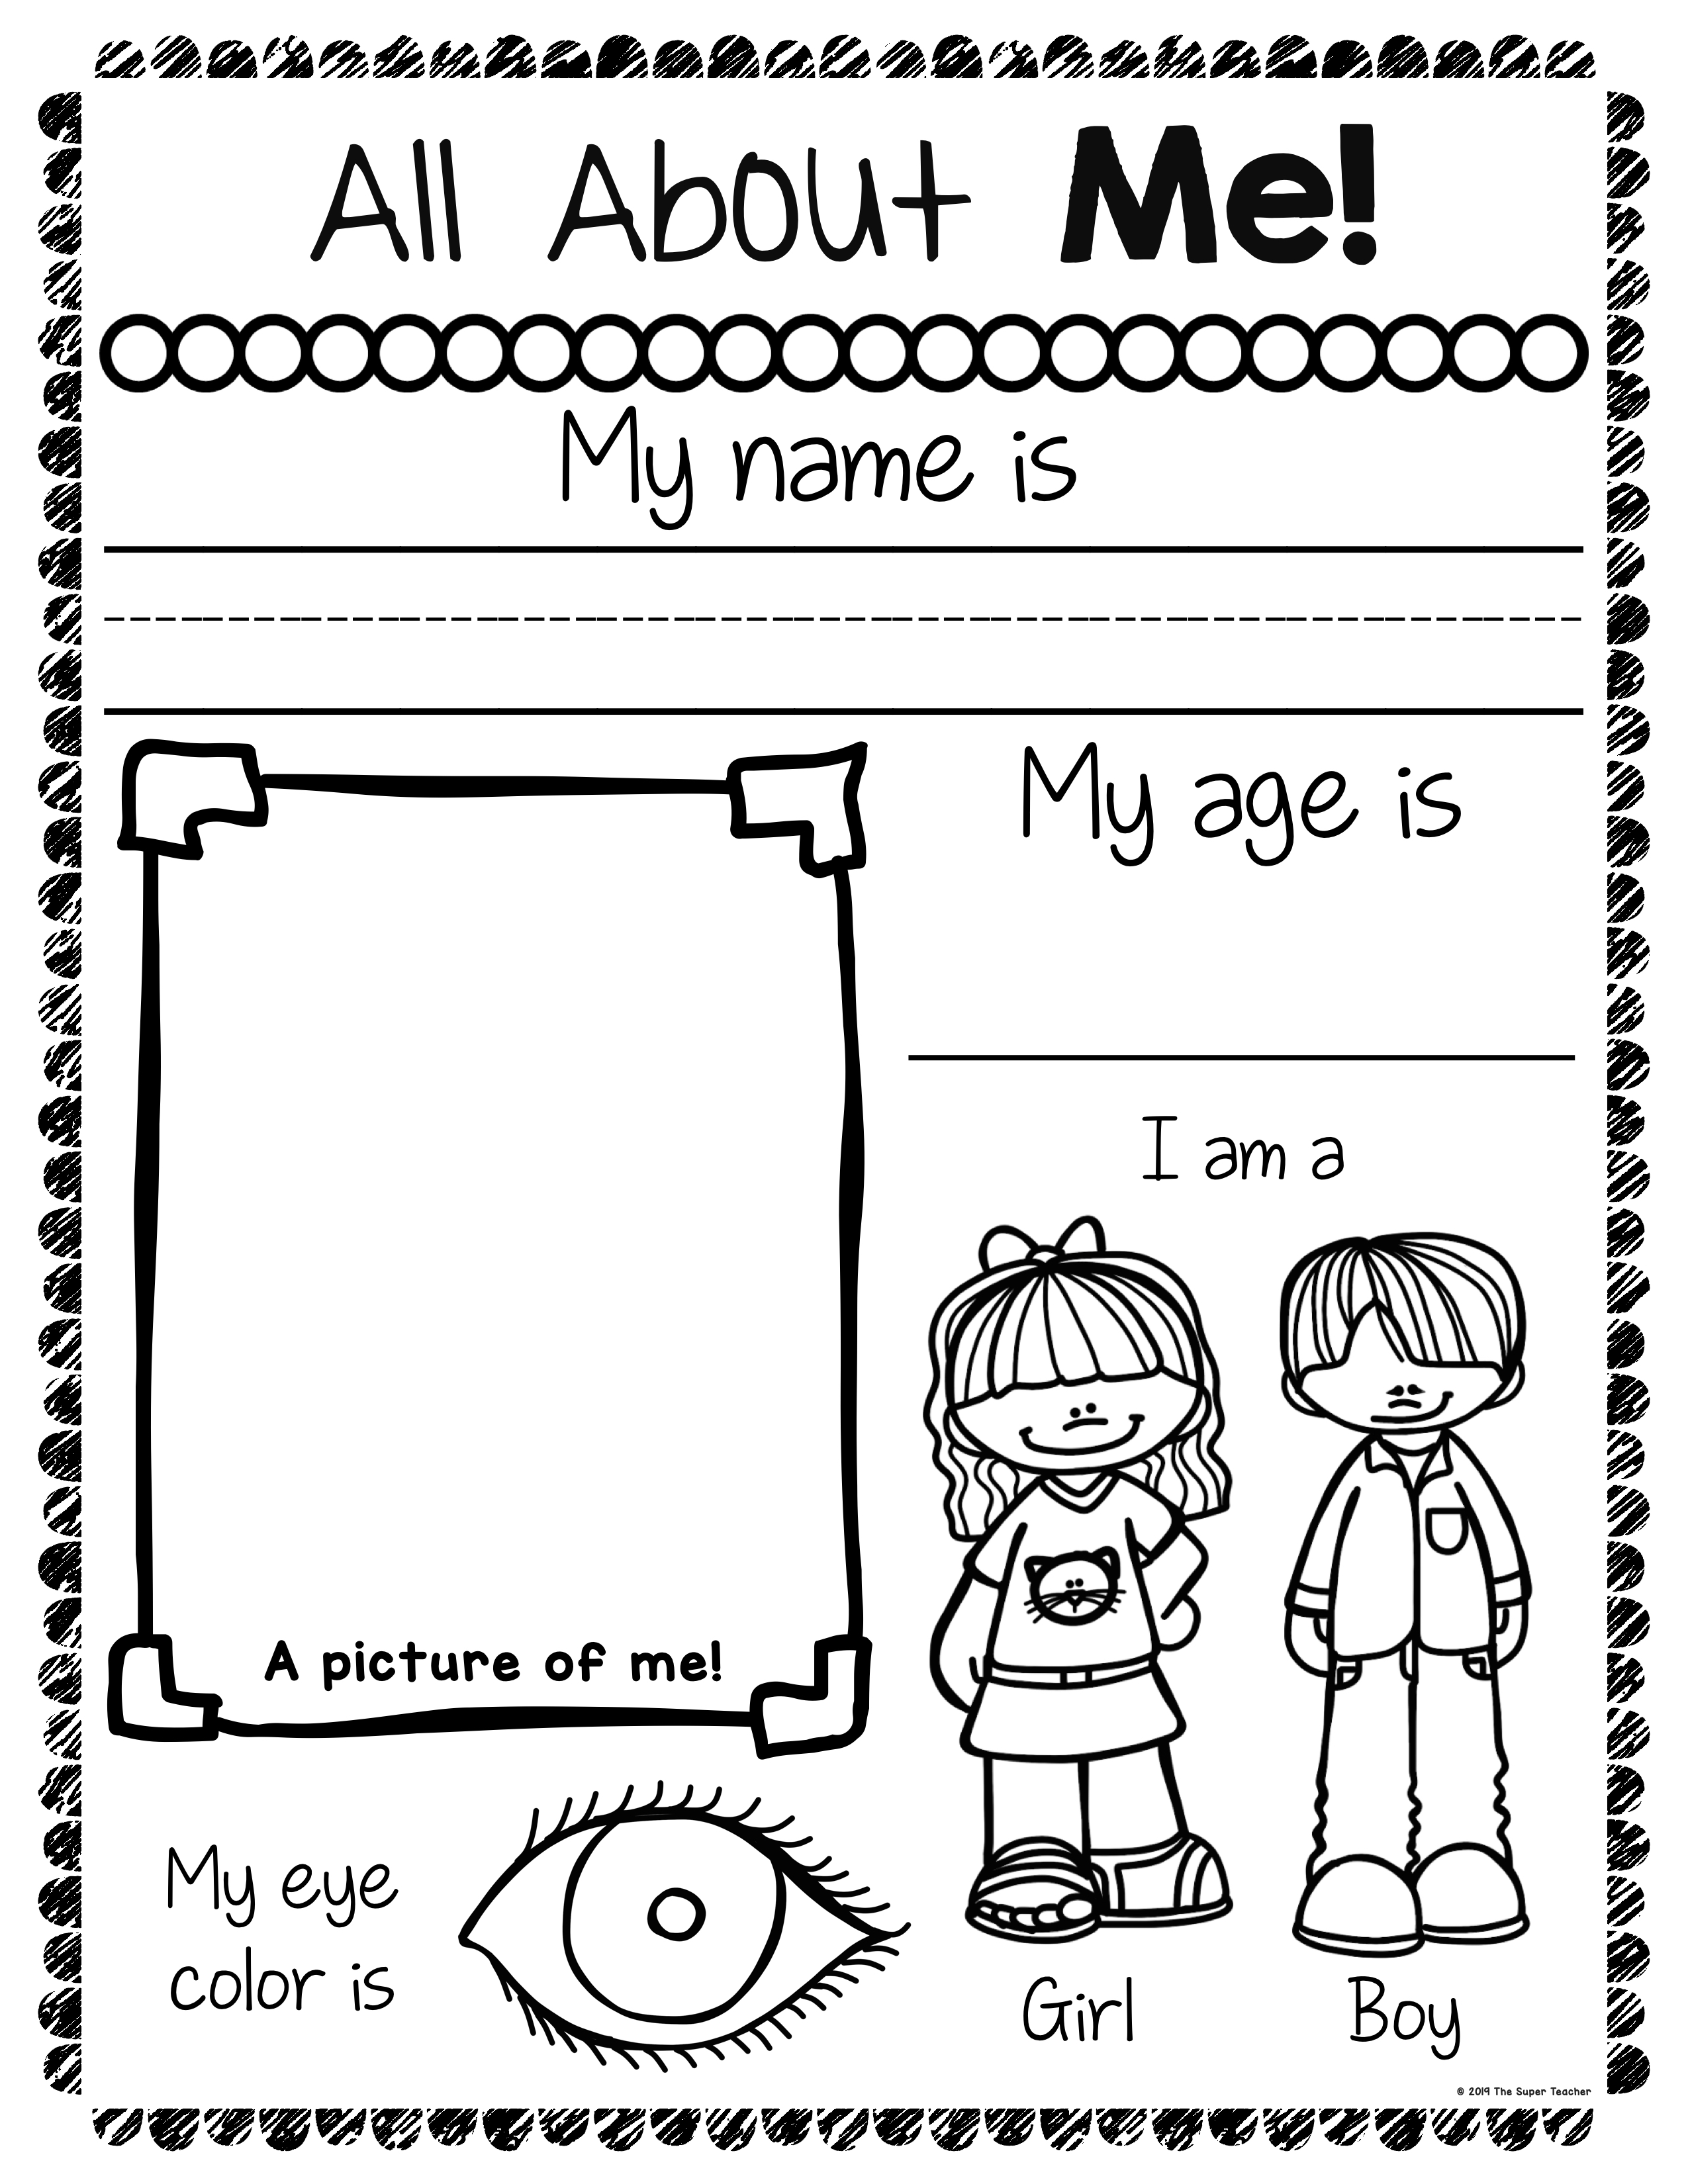 All About Me Worksheets – The Super Teacher [ 3300 x 2550 Pixel ]